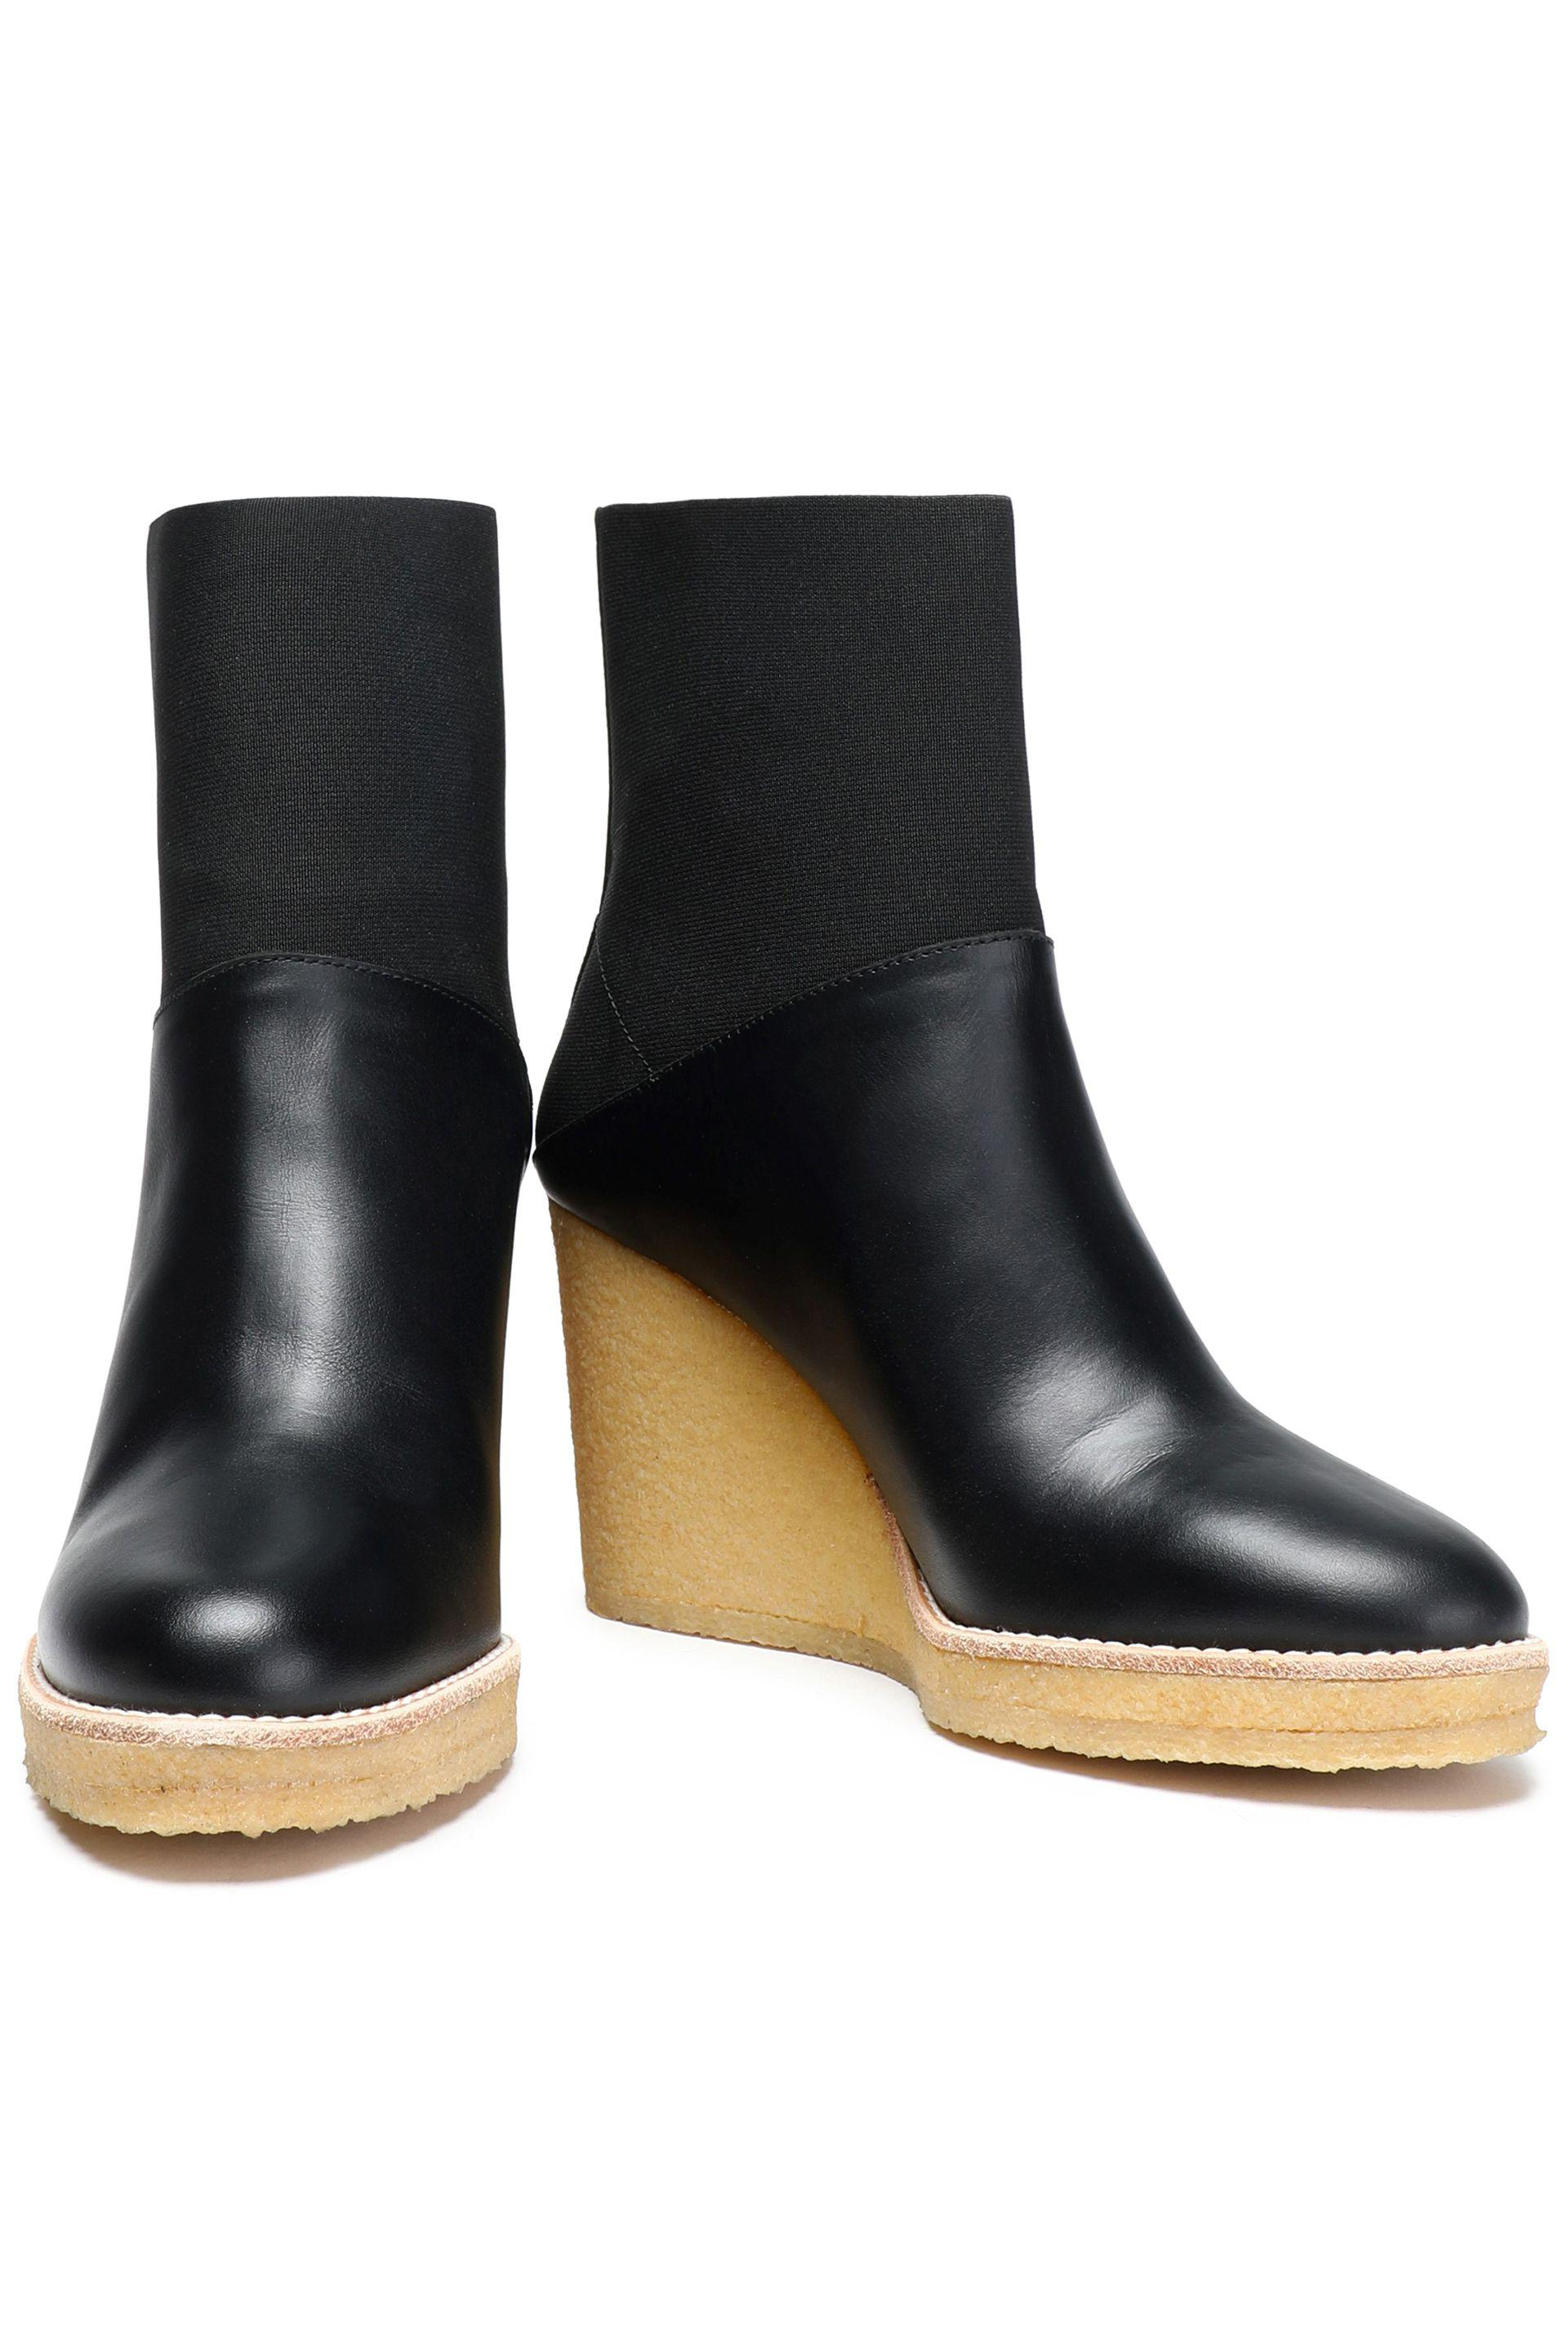 31d43b6bdd67 Castaner - Black Paneled Leather And Stretch-knit Wedge Ankle Boots - Lyst